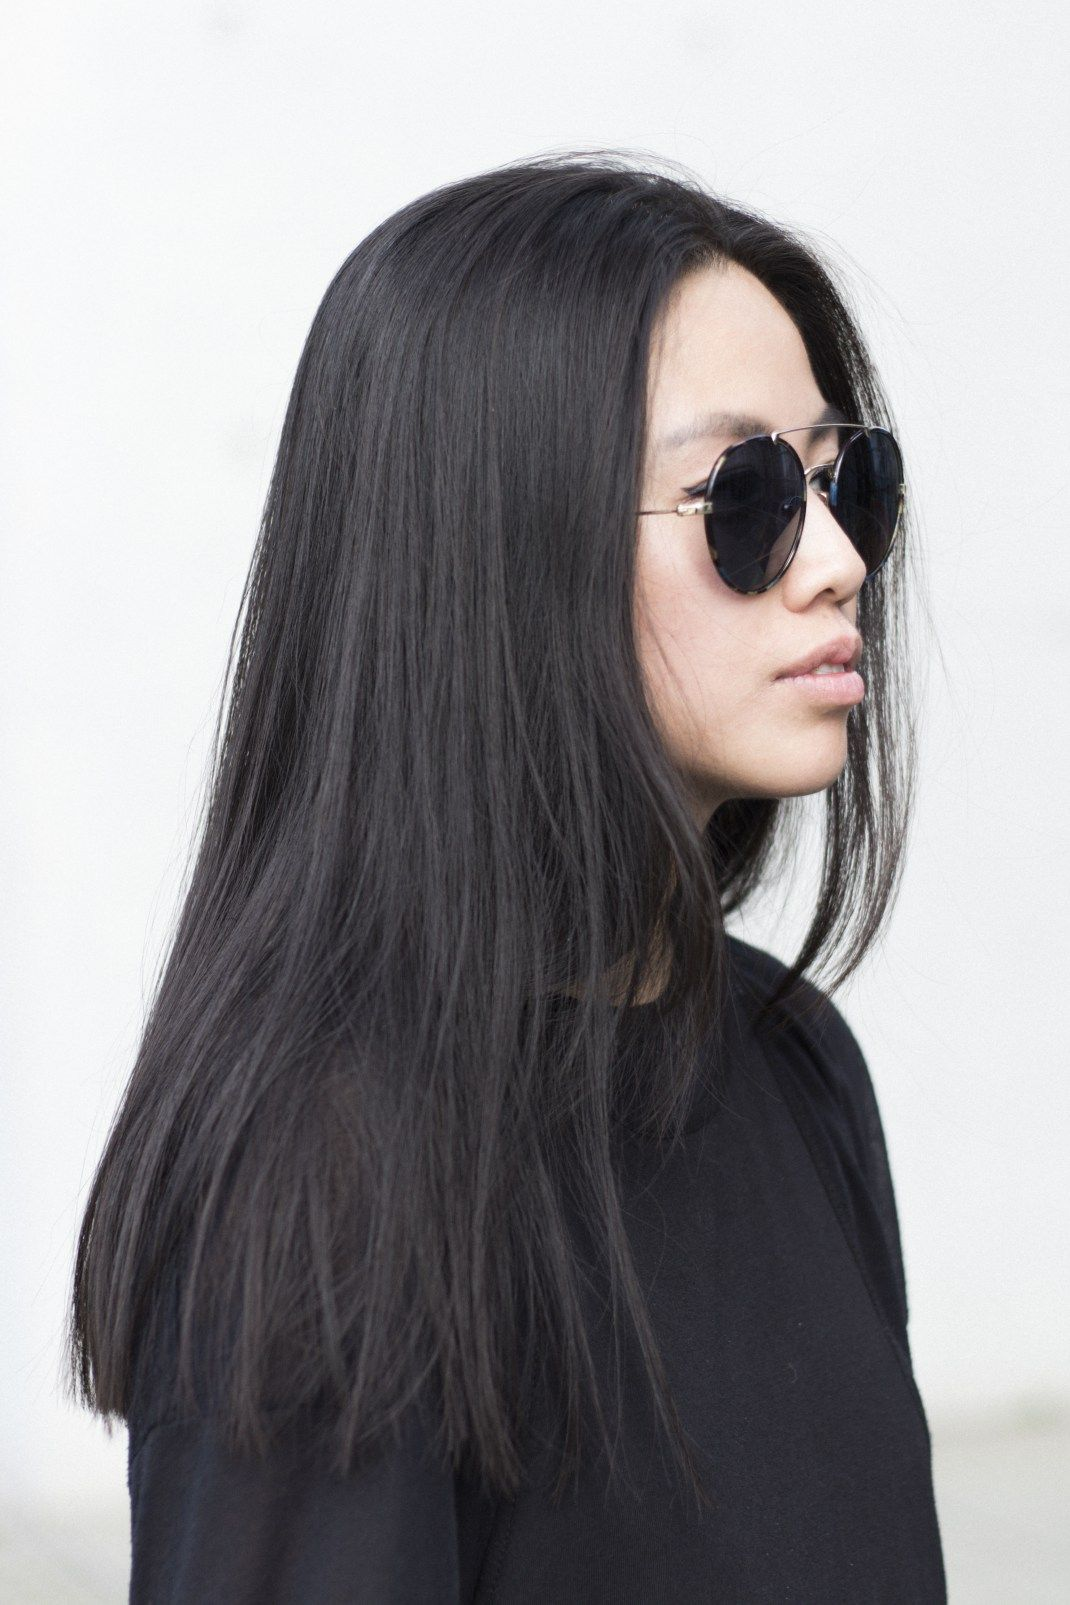 Blunt Cut Long Hair Straight Across Hair Pinterest Blunt